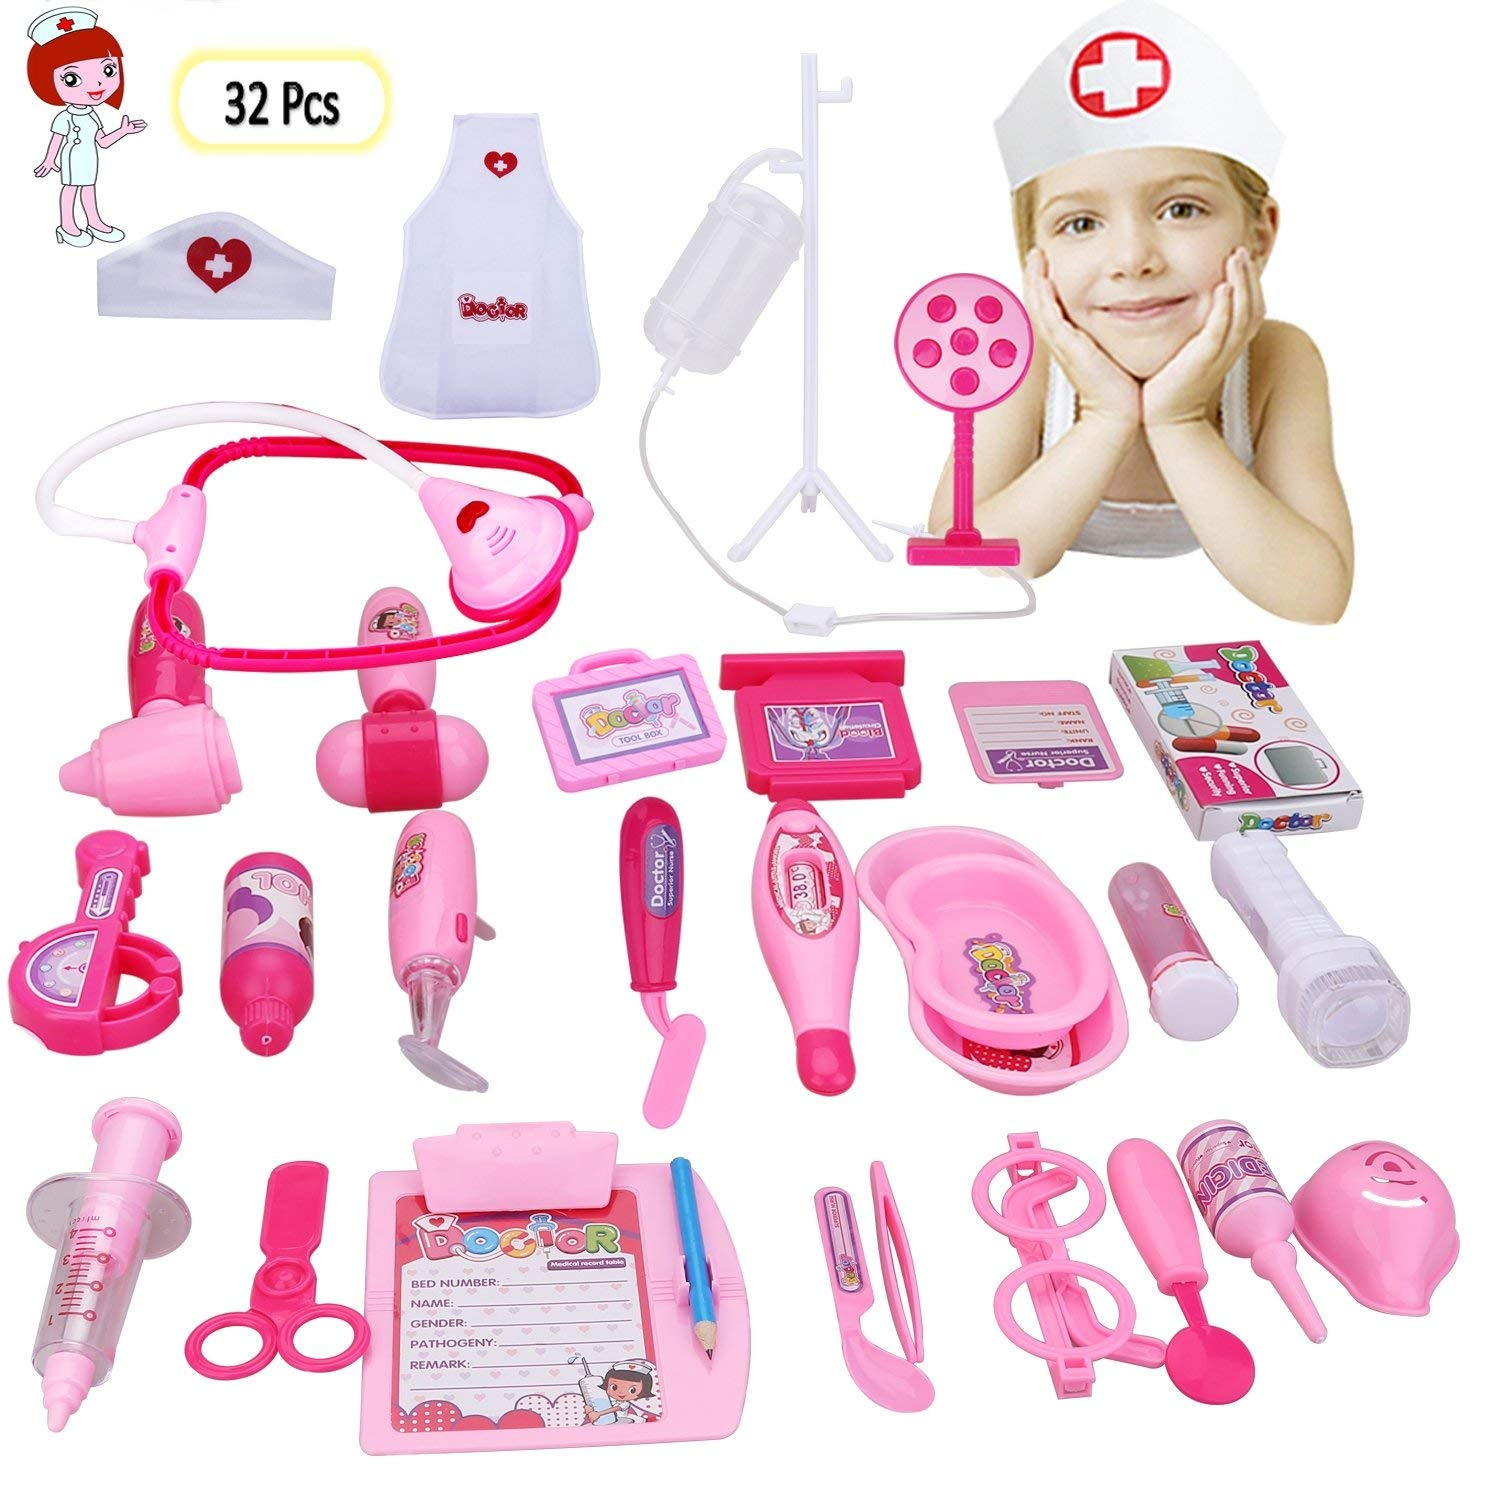 YNCTE Doctor Kit for Kids, 32 Piece Complete Pretend Play Doctor Toy Set Girls Boys Medical Doctor Role Playing